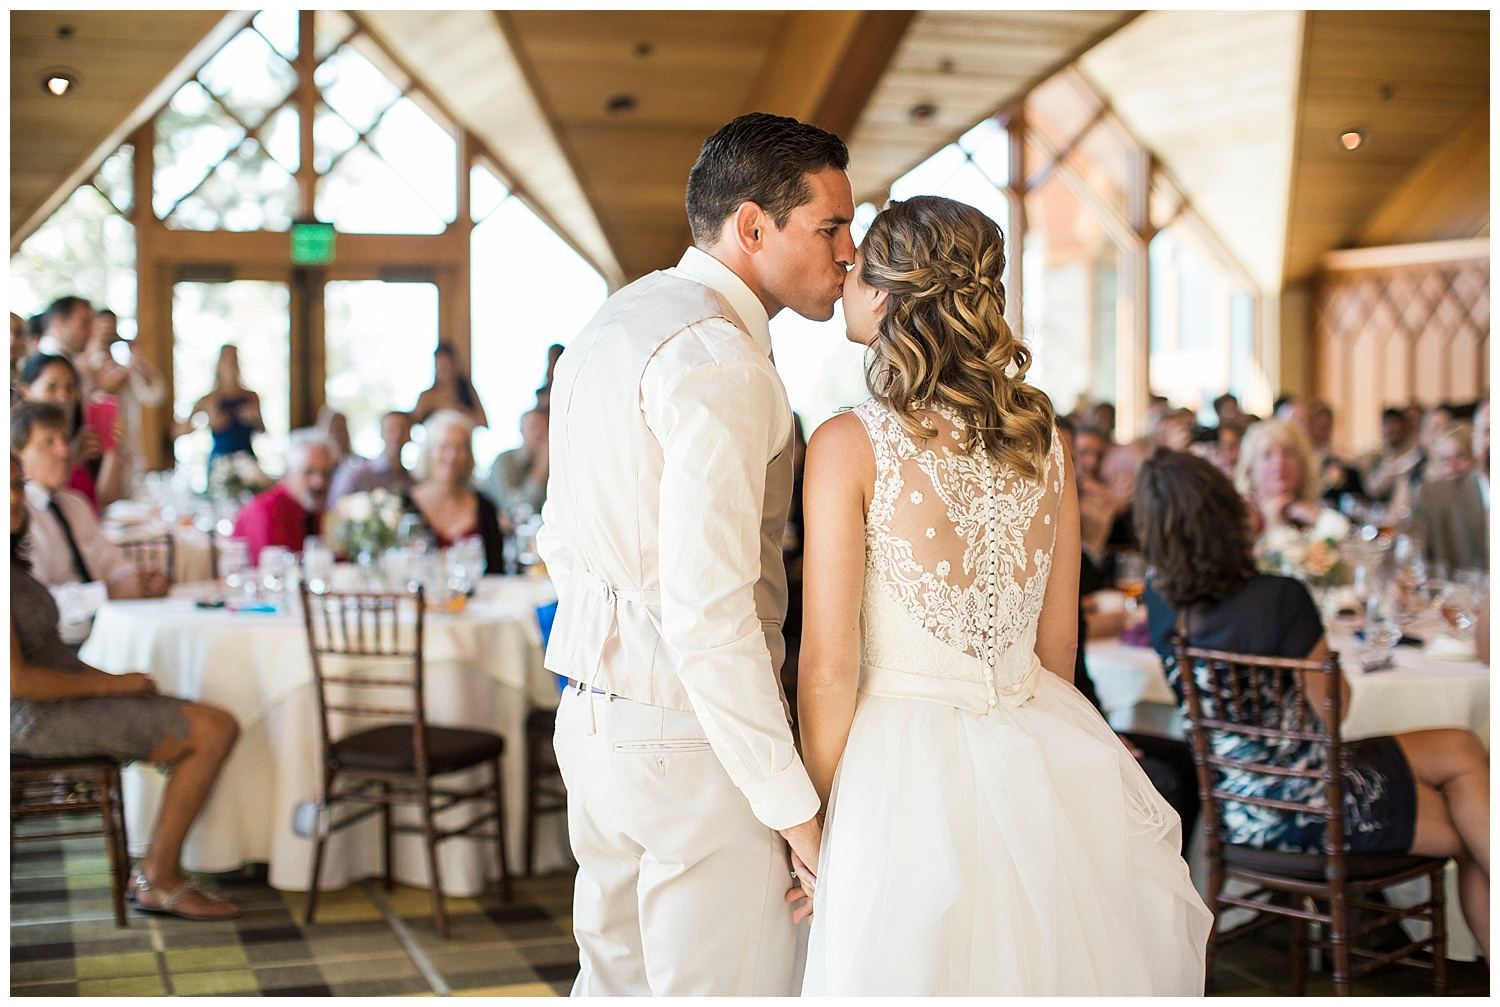 tahoe-wedding-edgewood-nicole-quiroz-photographer-lake-tahoe-california-sacramento-NICOLEQUIROZ_029.jpg